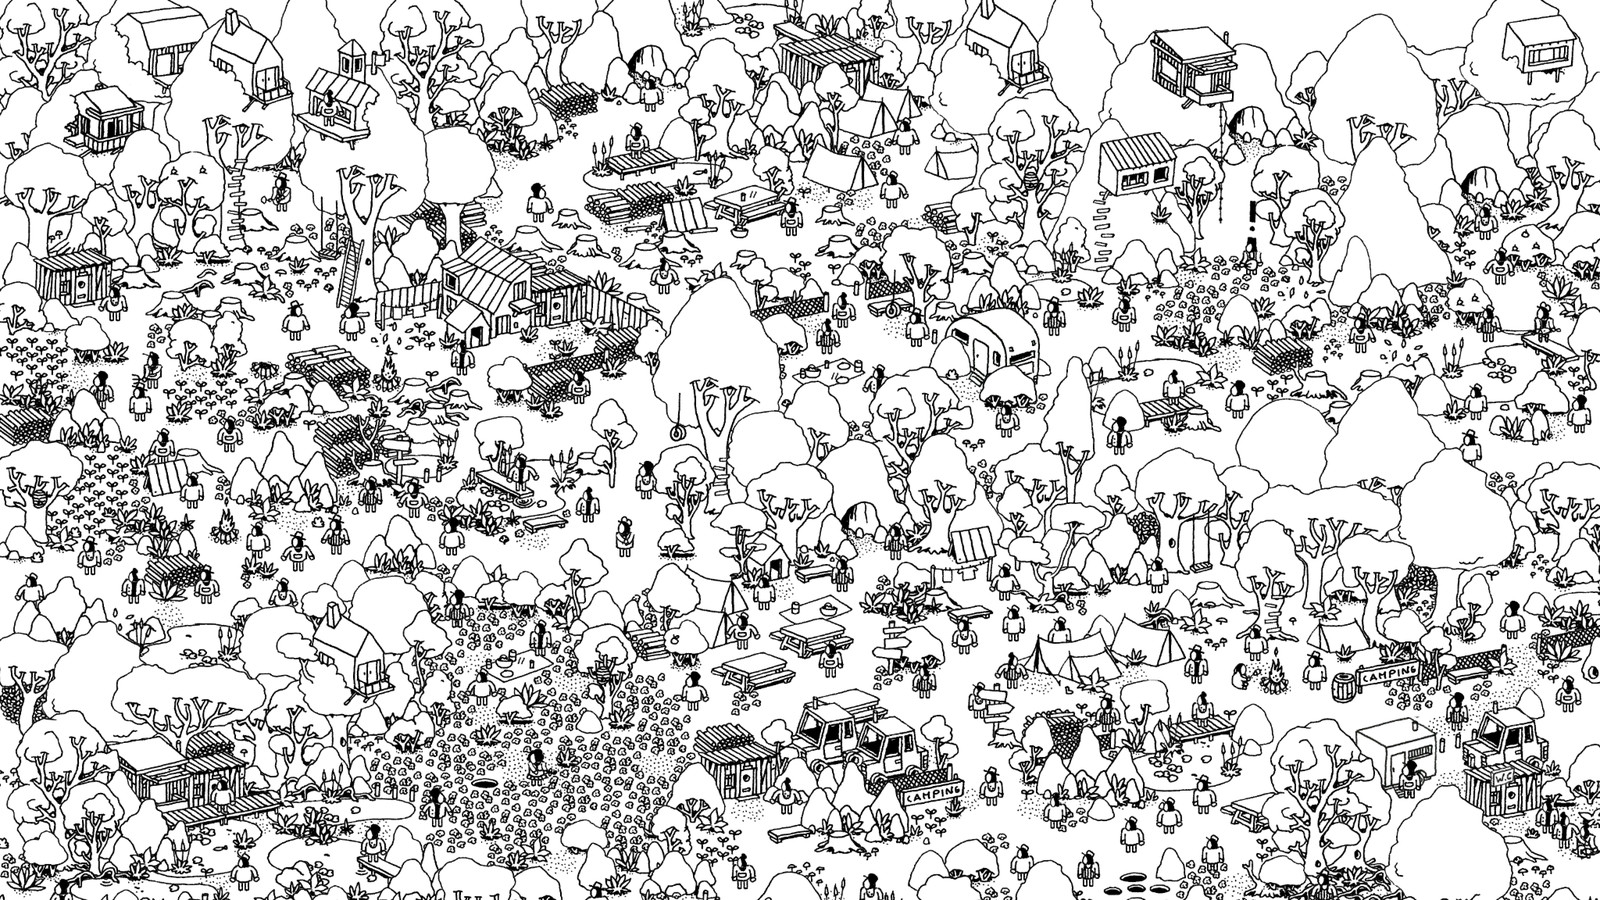 Fall Out Boy Wallpaper Ipad Hidden Folks Is The Where S Waldo Game You Didn T Know